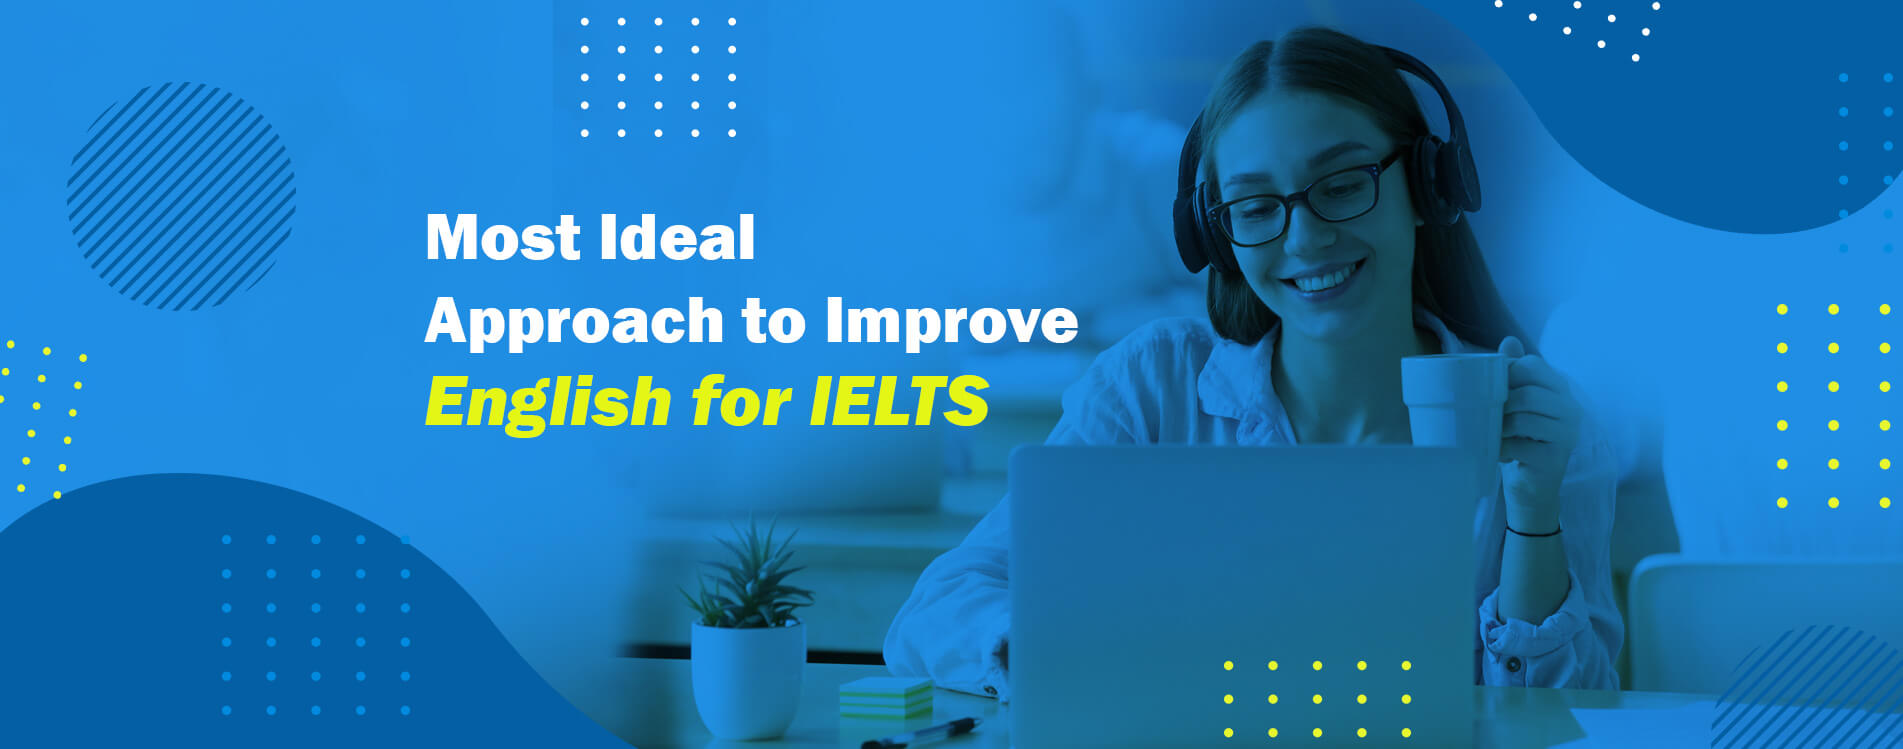 Most Ideal Approach to Improve English for IELTS